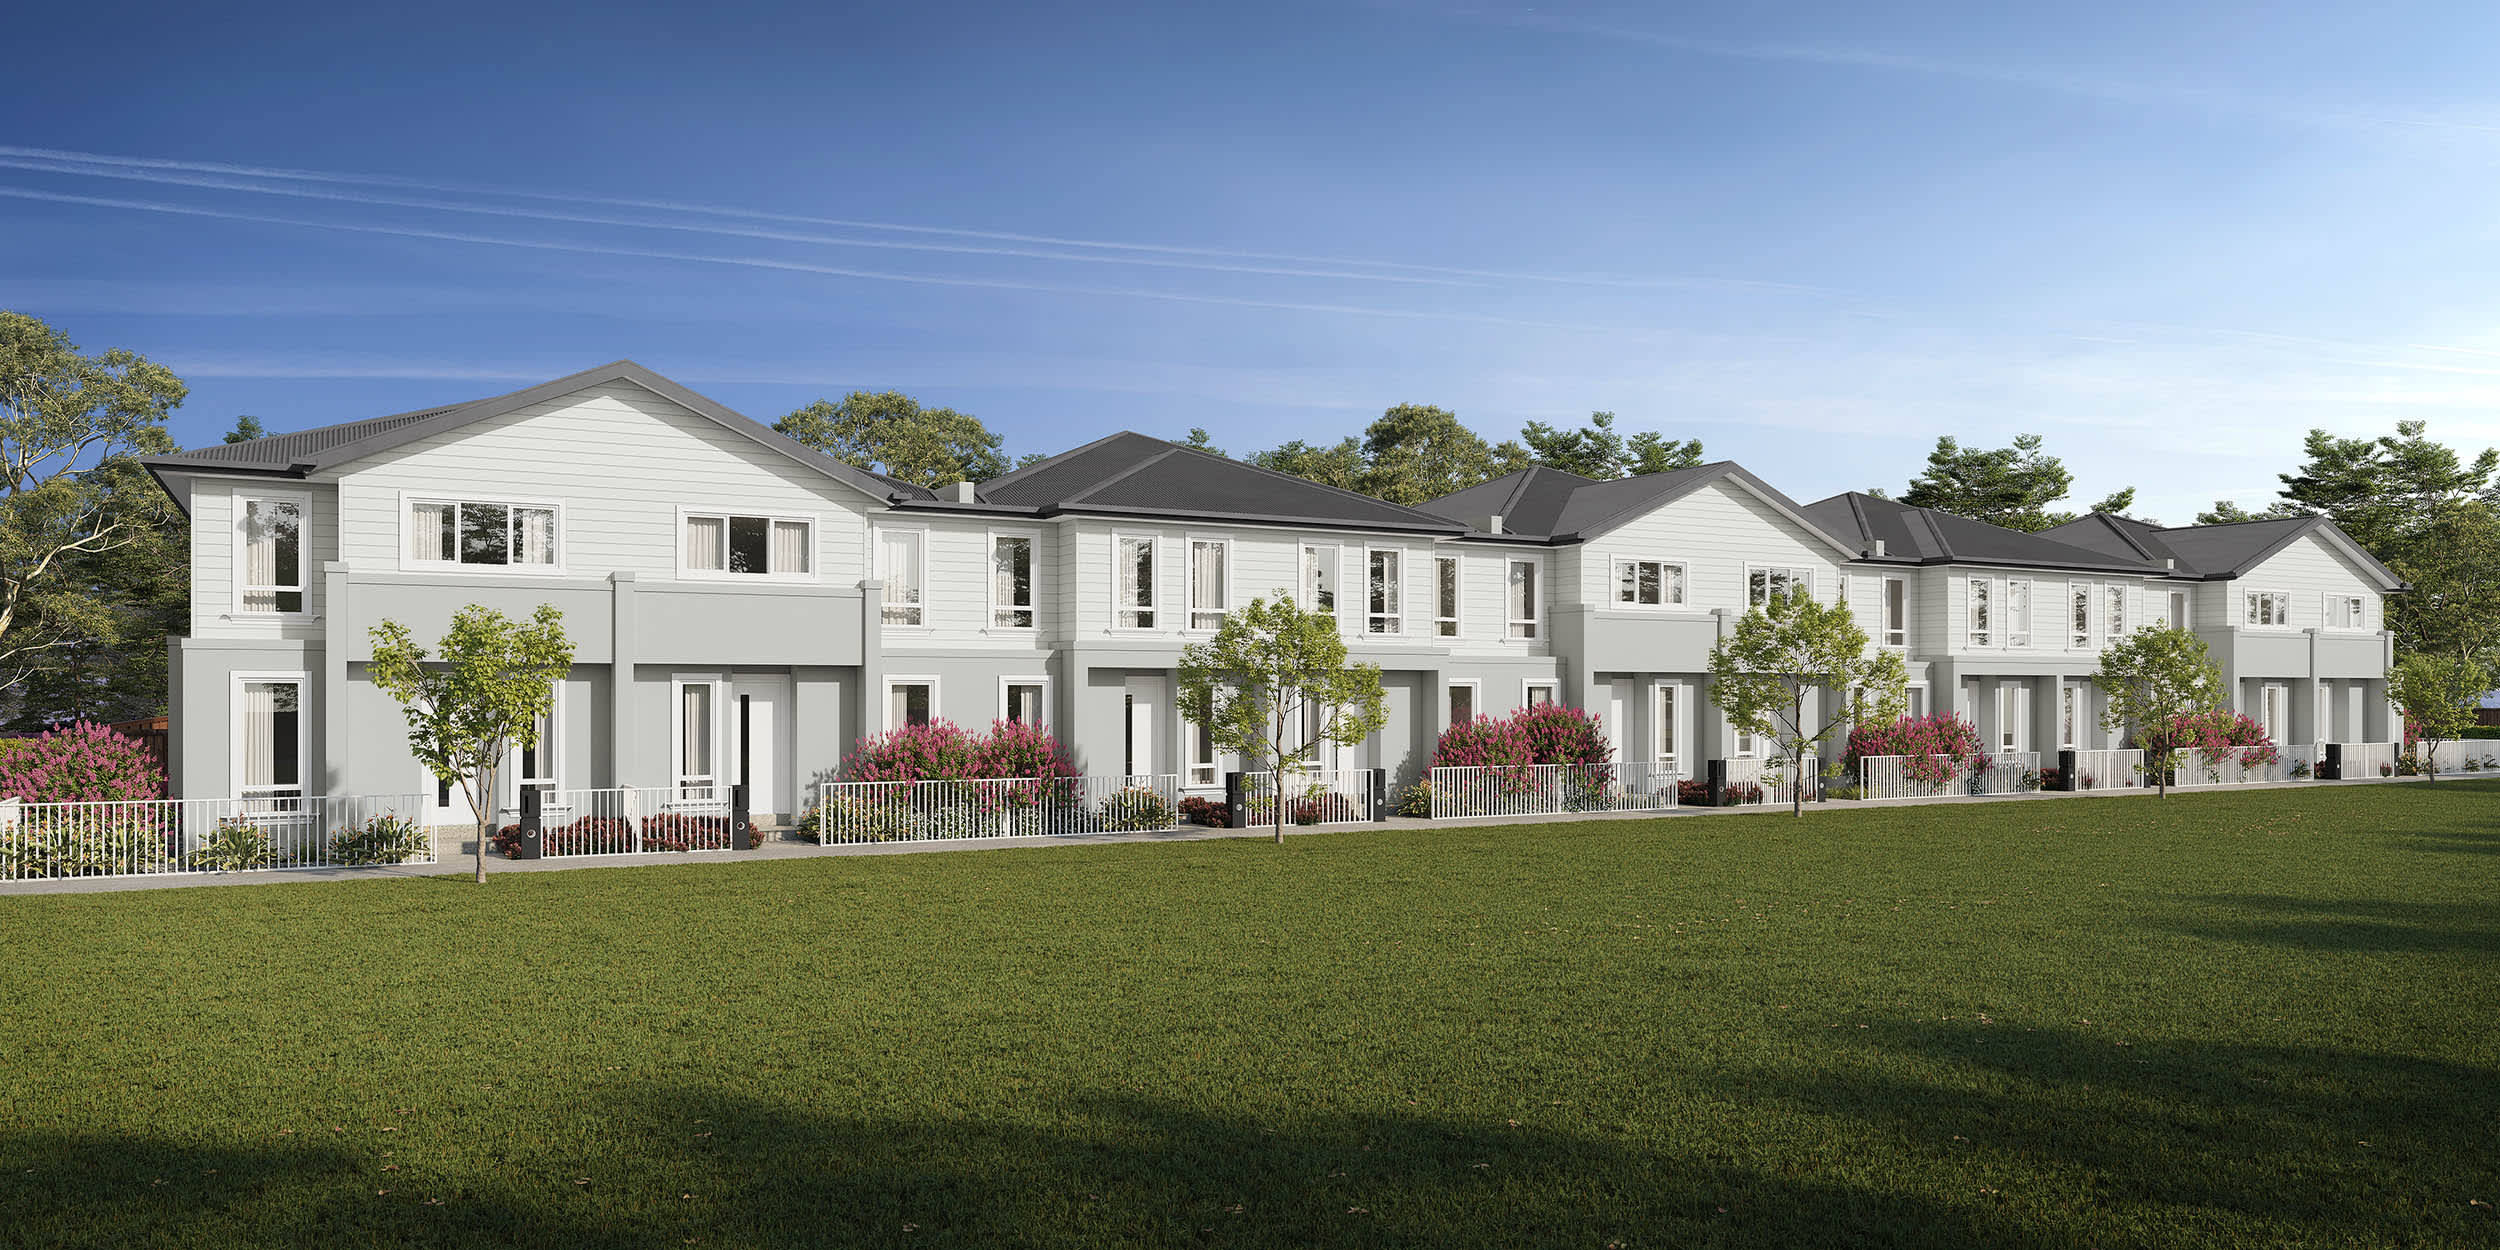 Hamptons townhomes from $459,900*